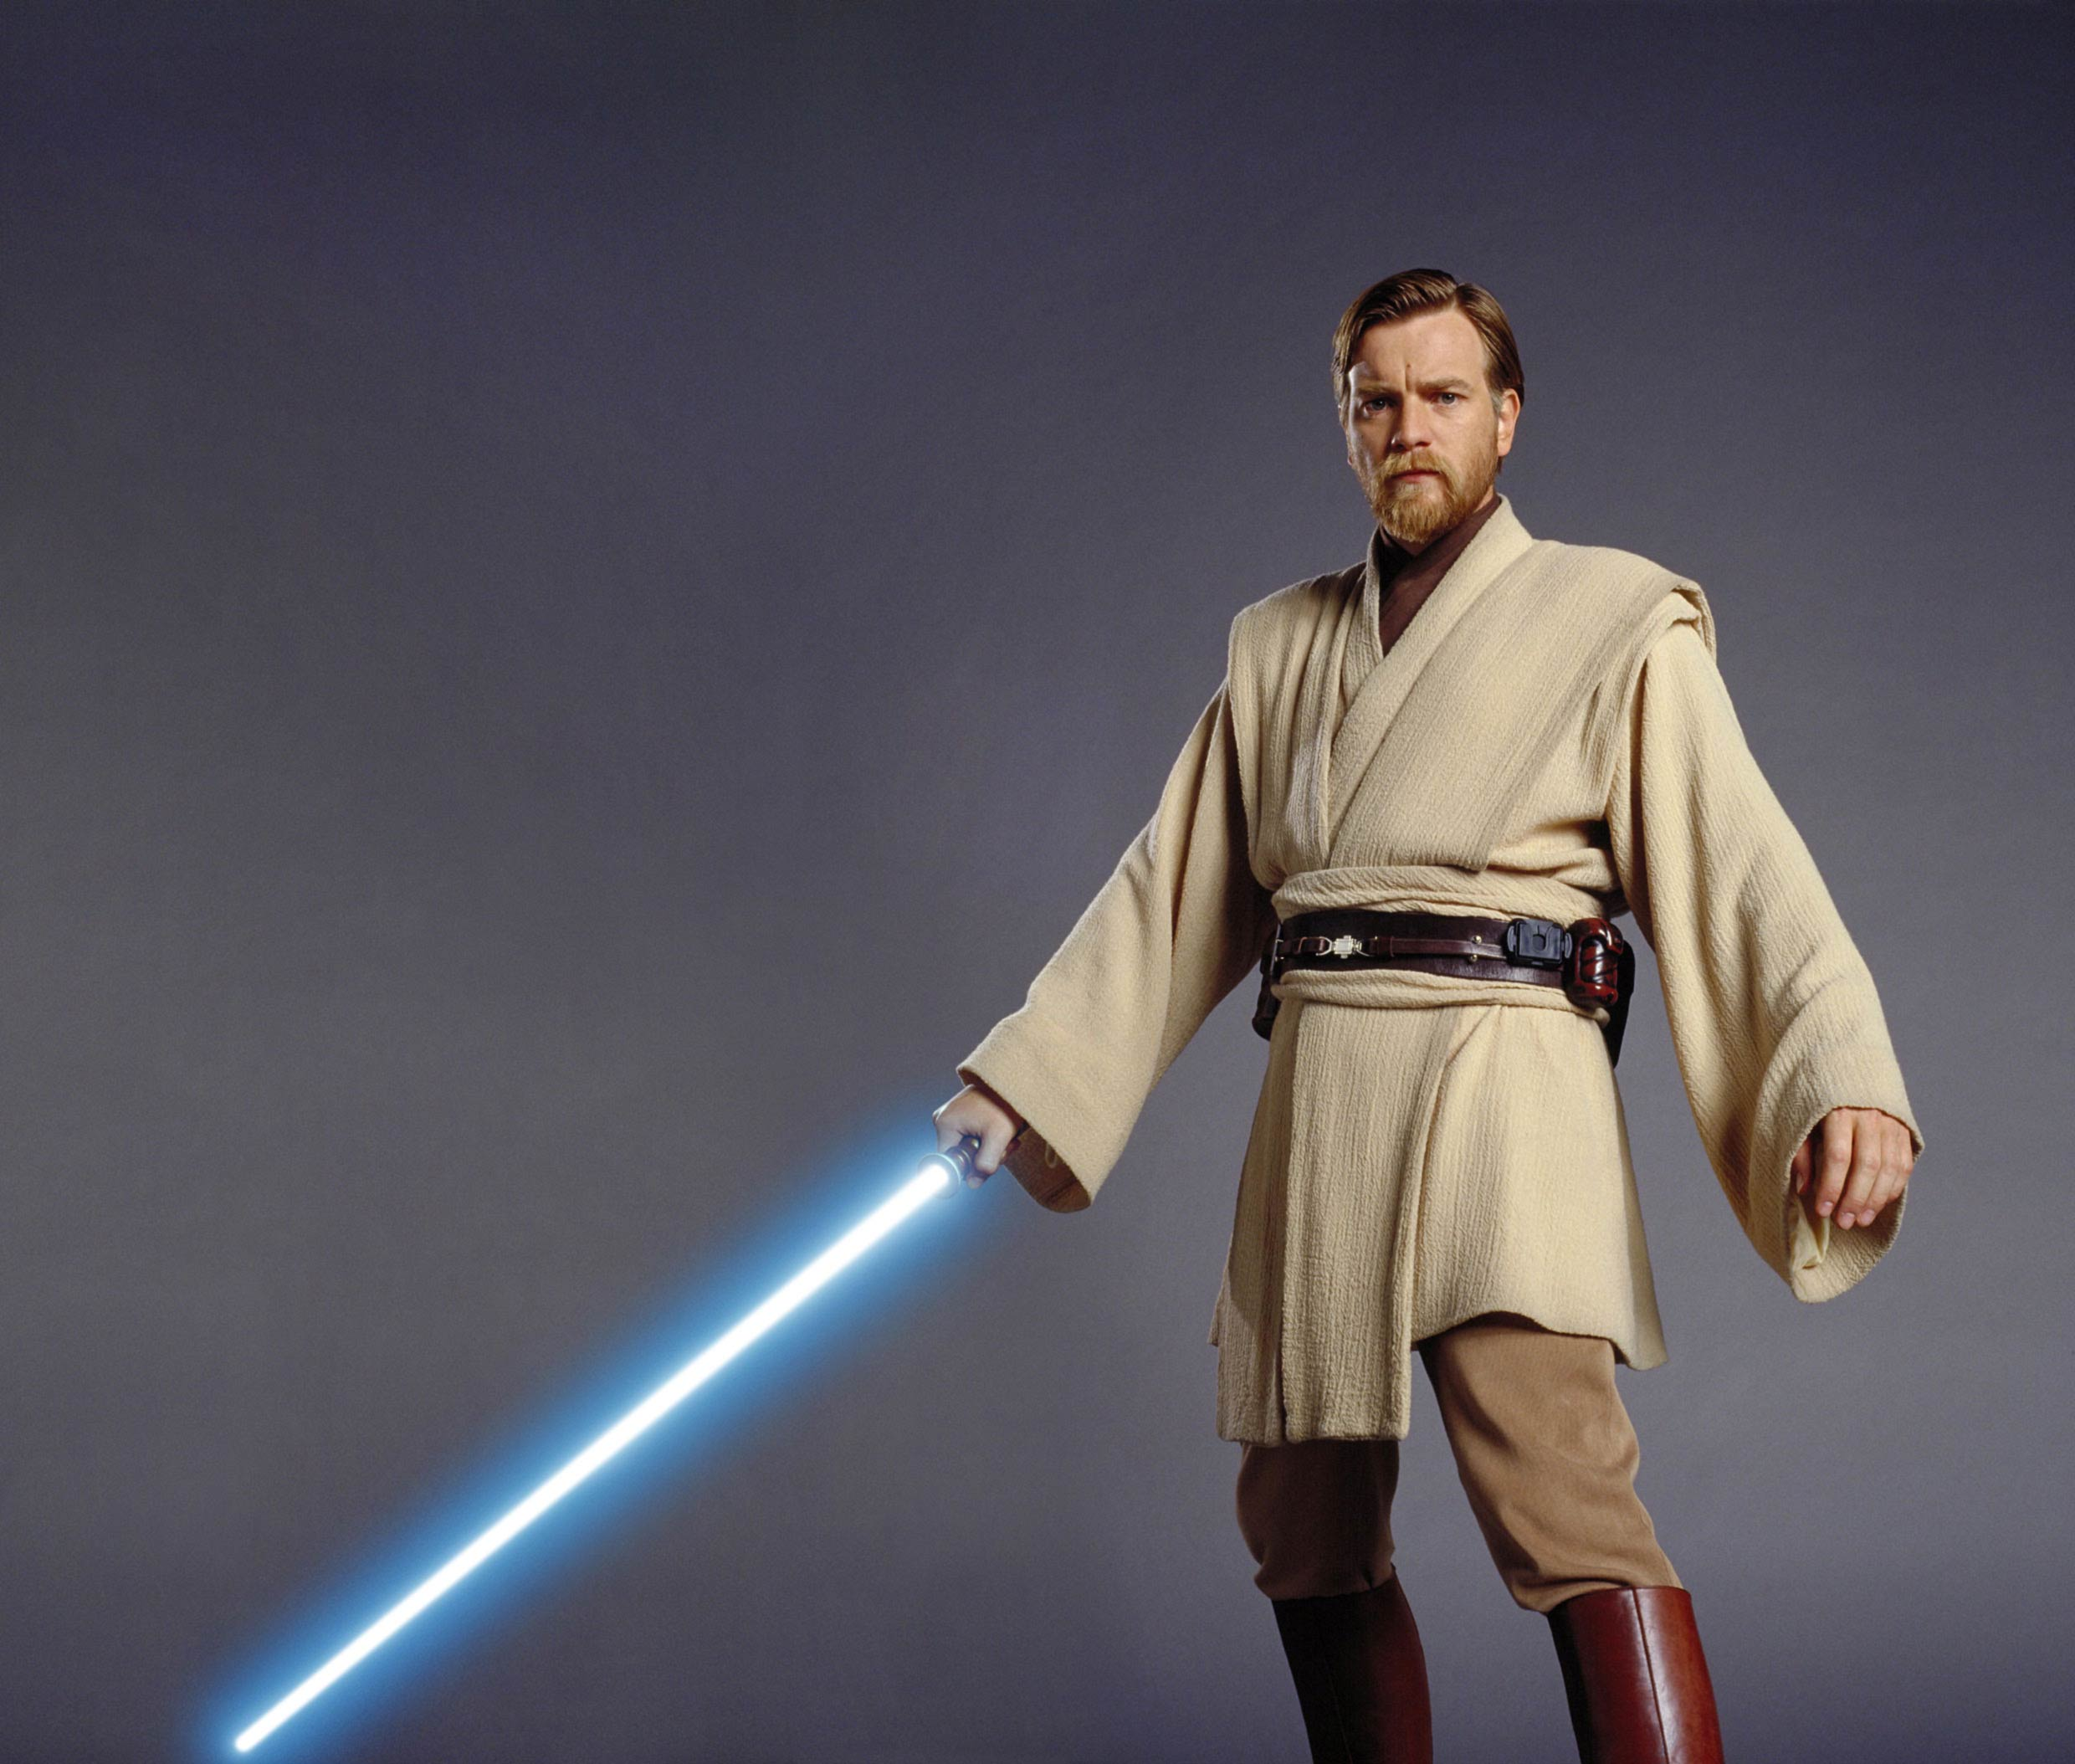 Ewan McGregor as Obi-Wan Kenobi in Star Wars: Episode III - Revenge of the Sith.